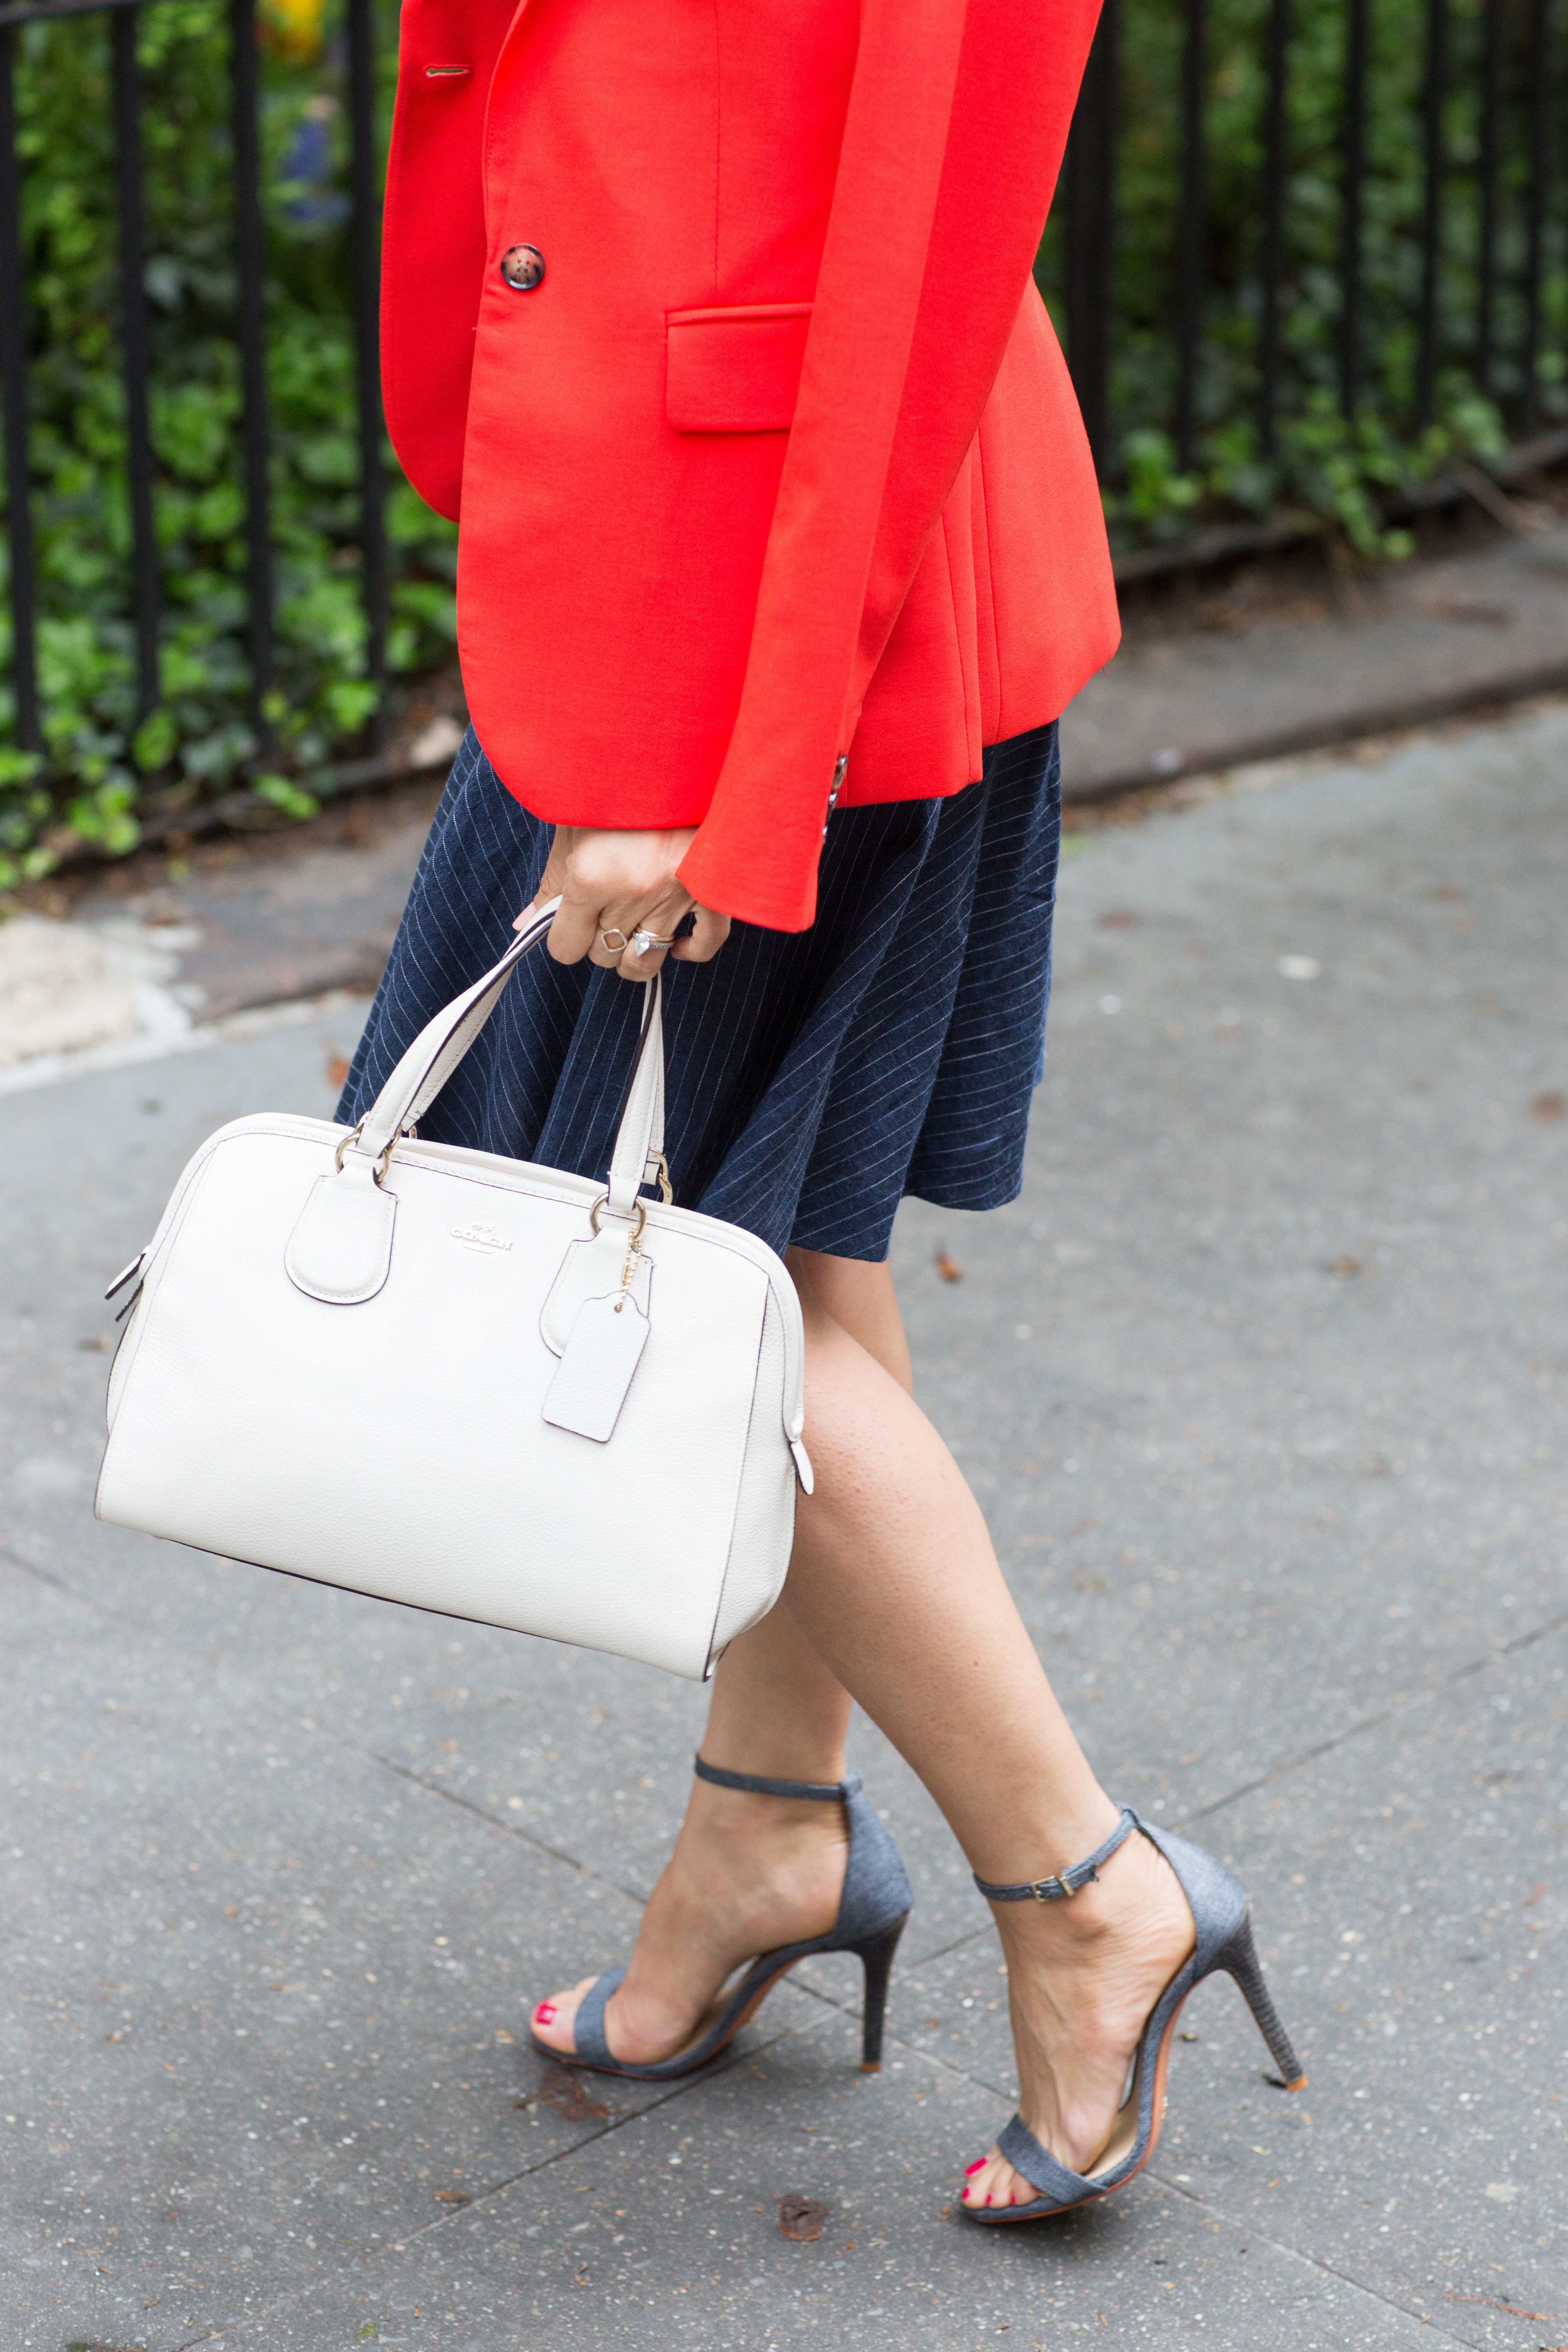 workwear-outfit-for-spring-wearing-Banana-Republic-Red-Blazer-with-denim-dress-and-white-coach-purse7